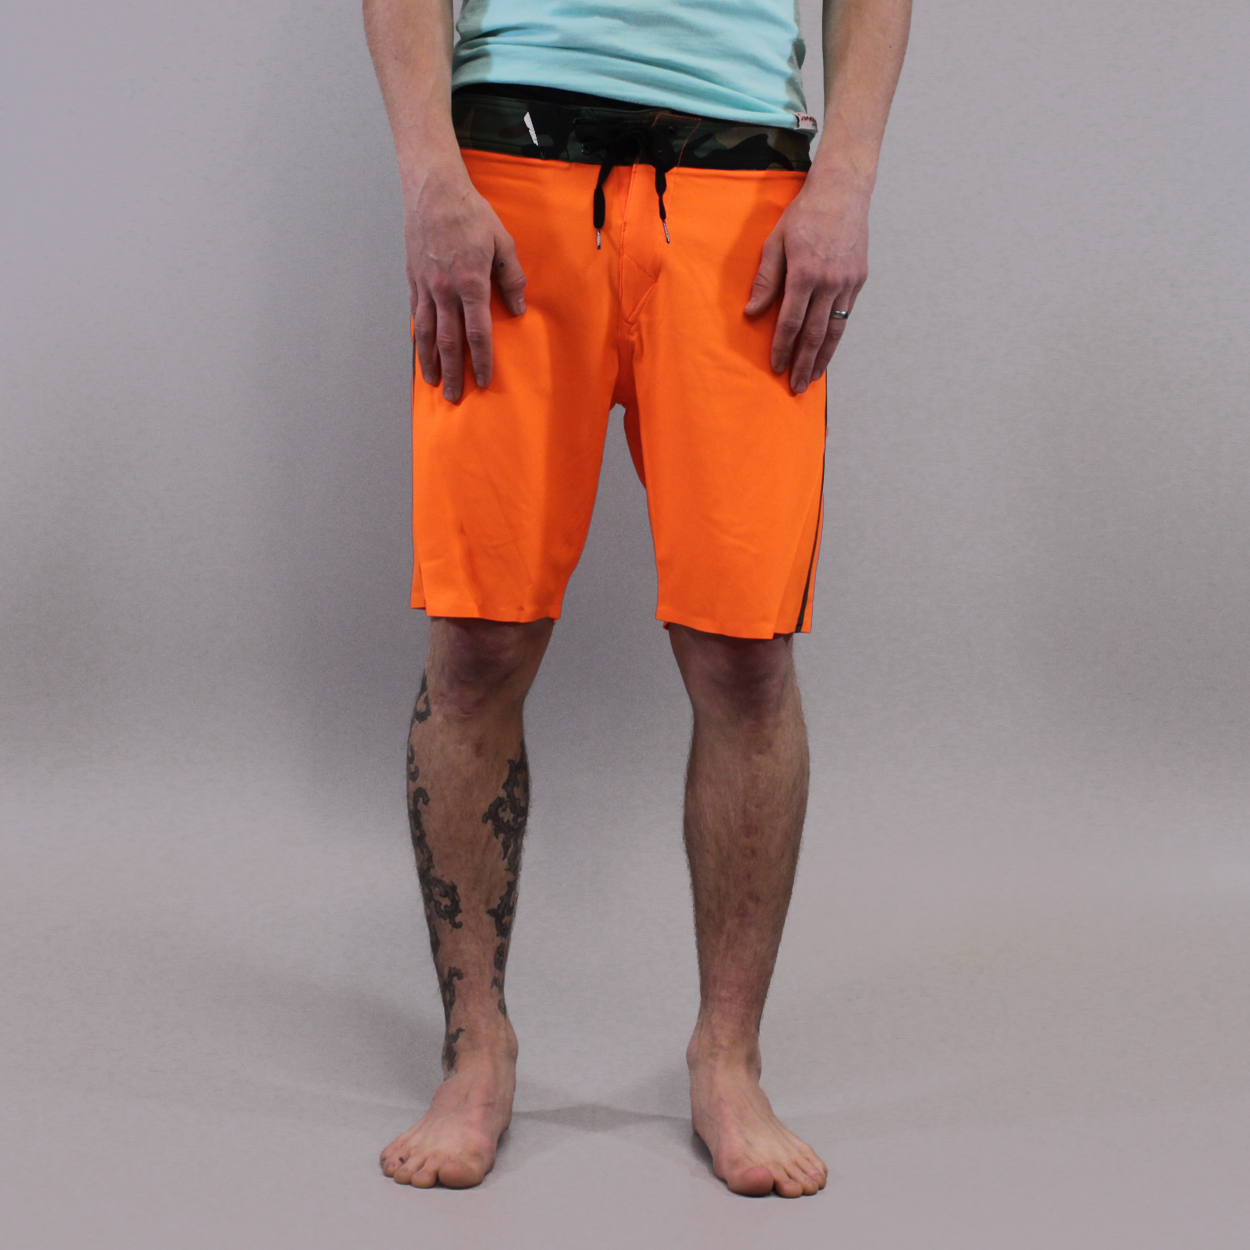 929e6bb48d Fox Racing Camino Mens Boardshorts Orange Camo Boardie Shorts £20.00